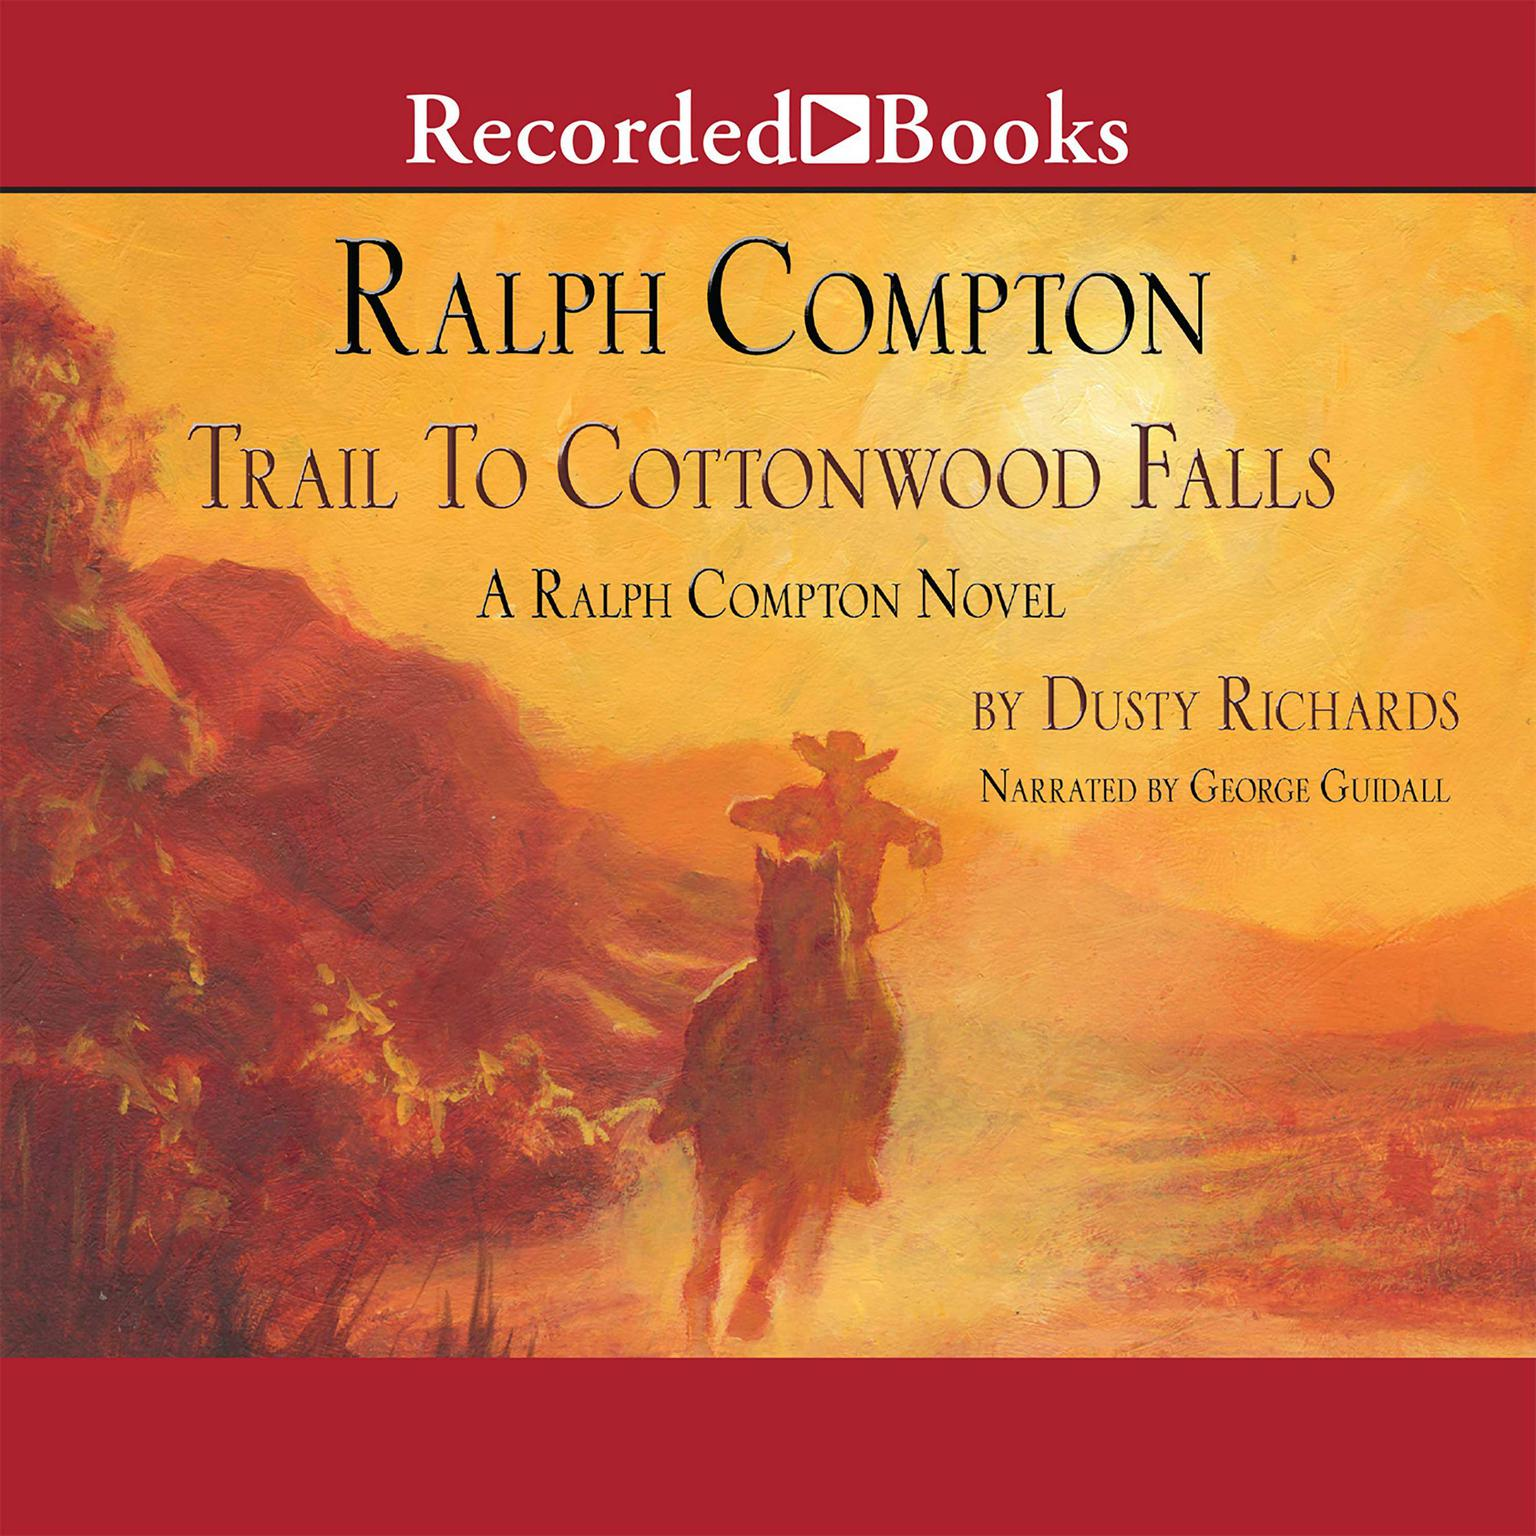 Printable Trail to Cottonwood Falls: A Ralph Compton Novel Audiobook Cover Art